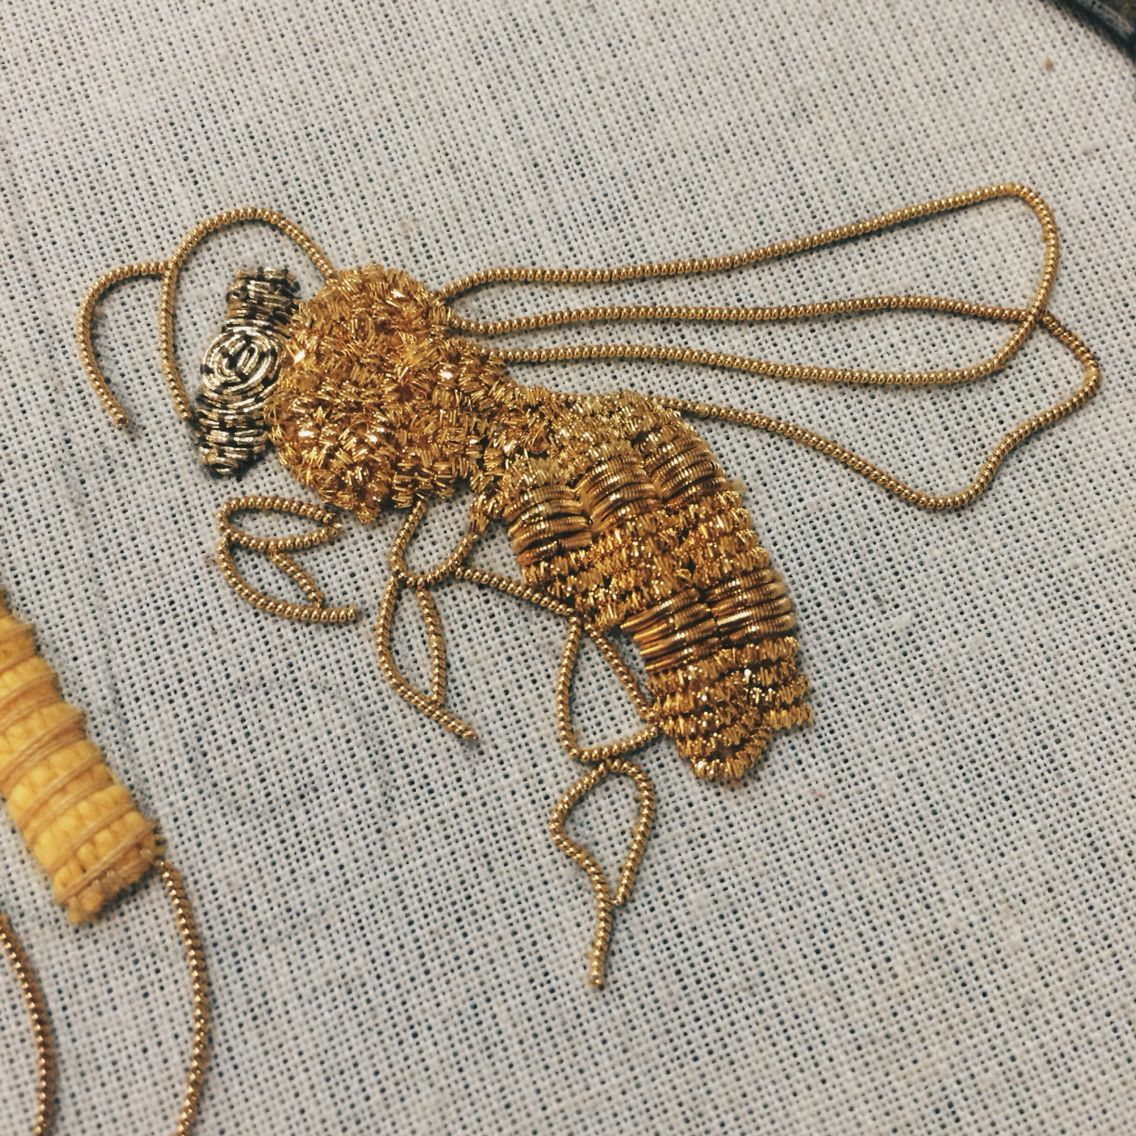 Own Goldwork design - first attempt